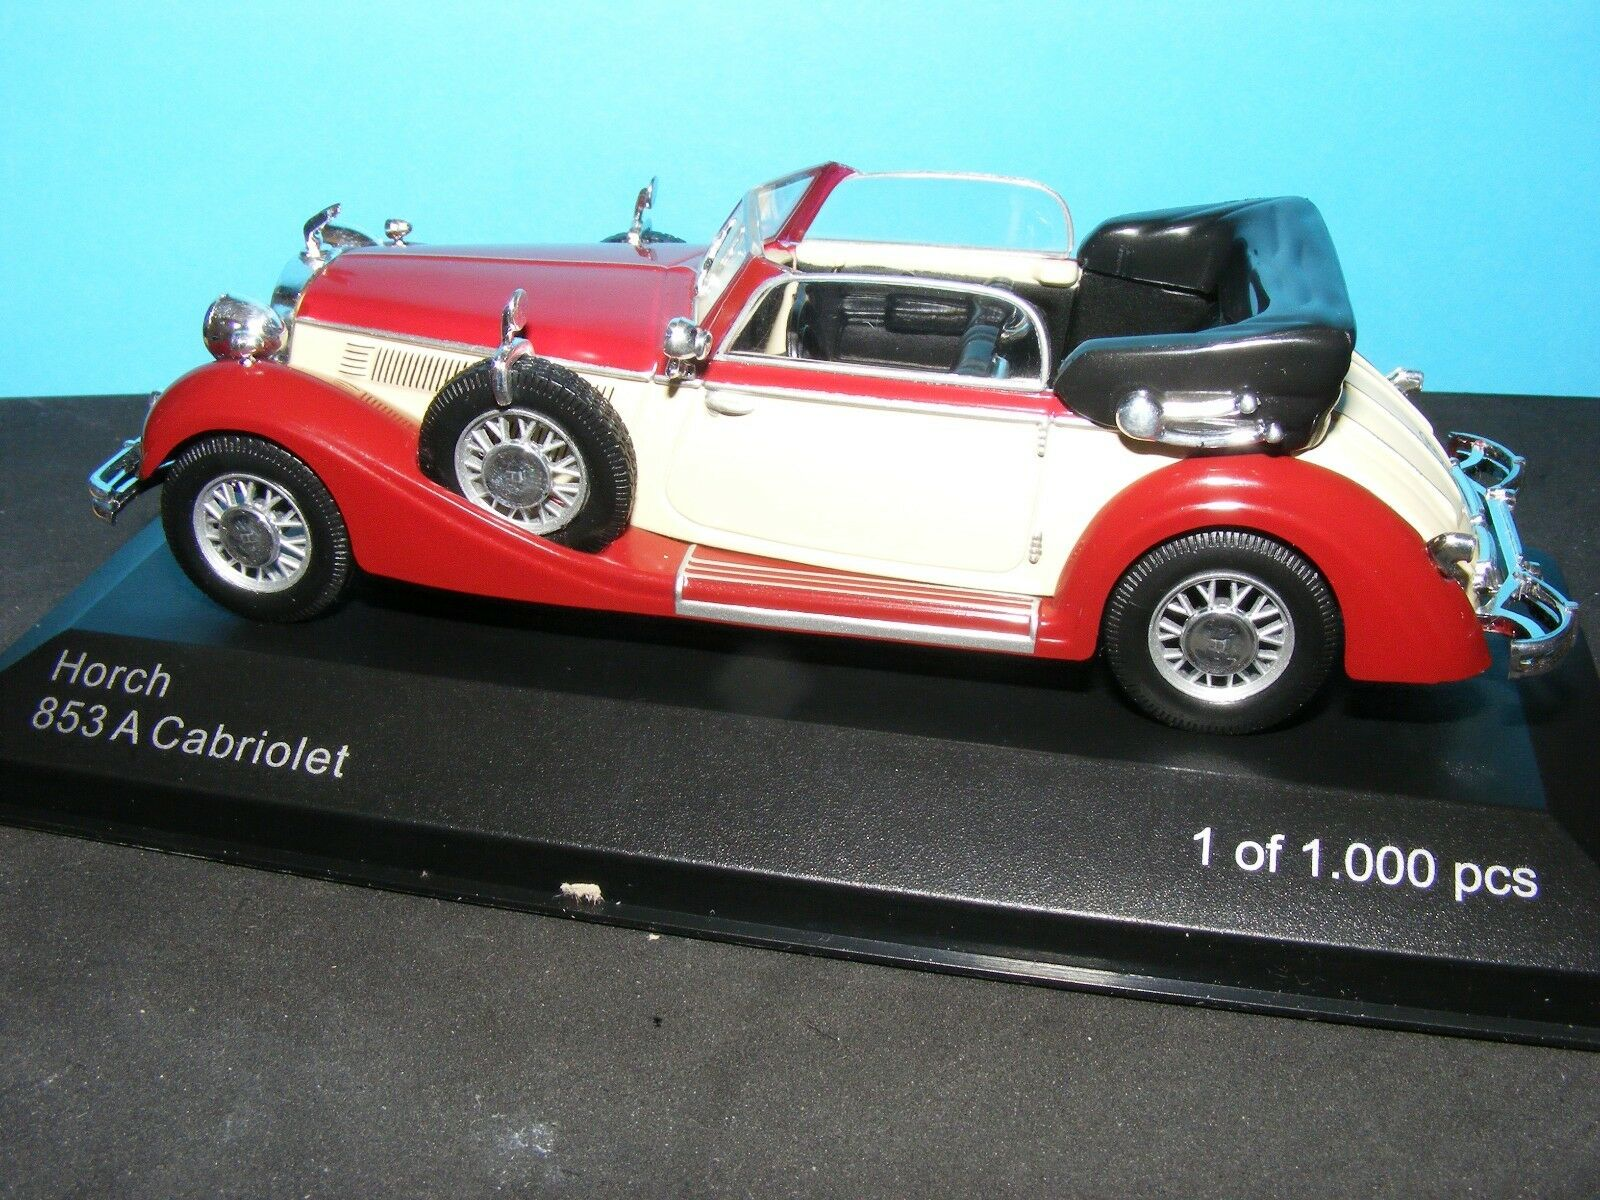 Horch 853 A Cabriolet in Met Red   Whitebox Product in 1 43rd. Scale